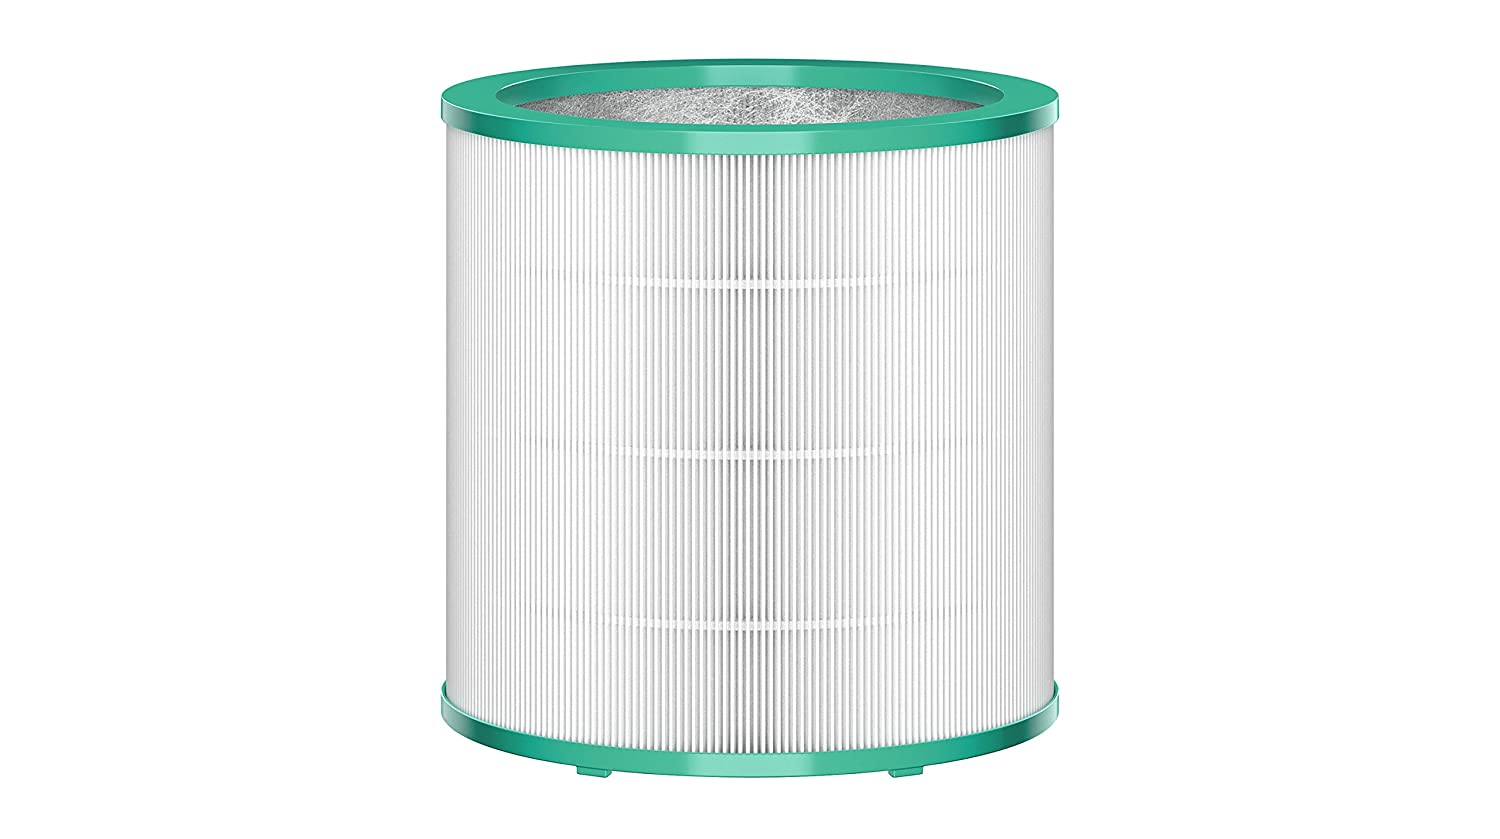 Dyson Tower Purifier Replacement Filter - 968126-03